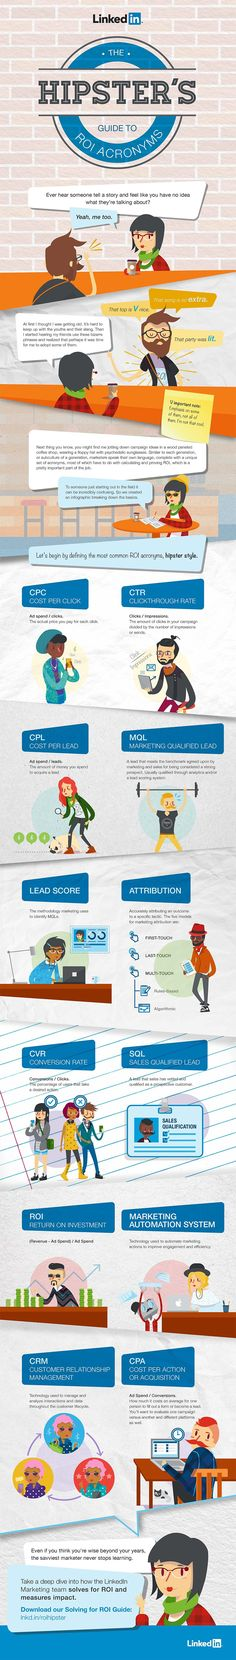 WTF Does That Mean? 12 #Marketing Acronyms Explained #Infographic #SocialMedia